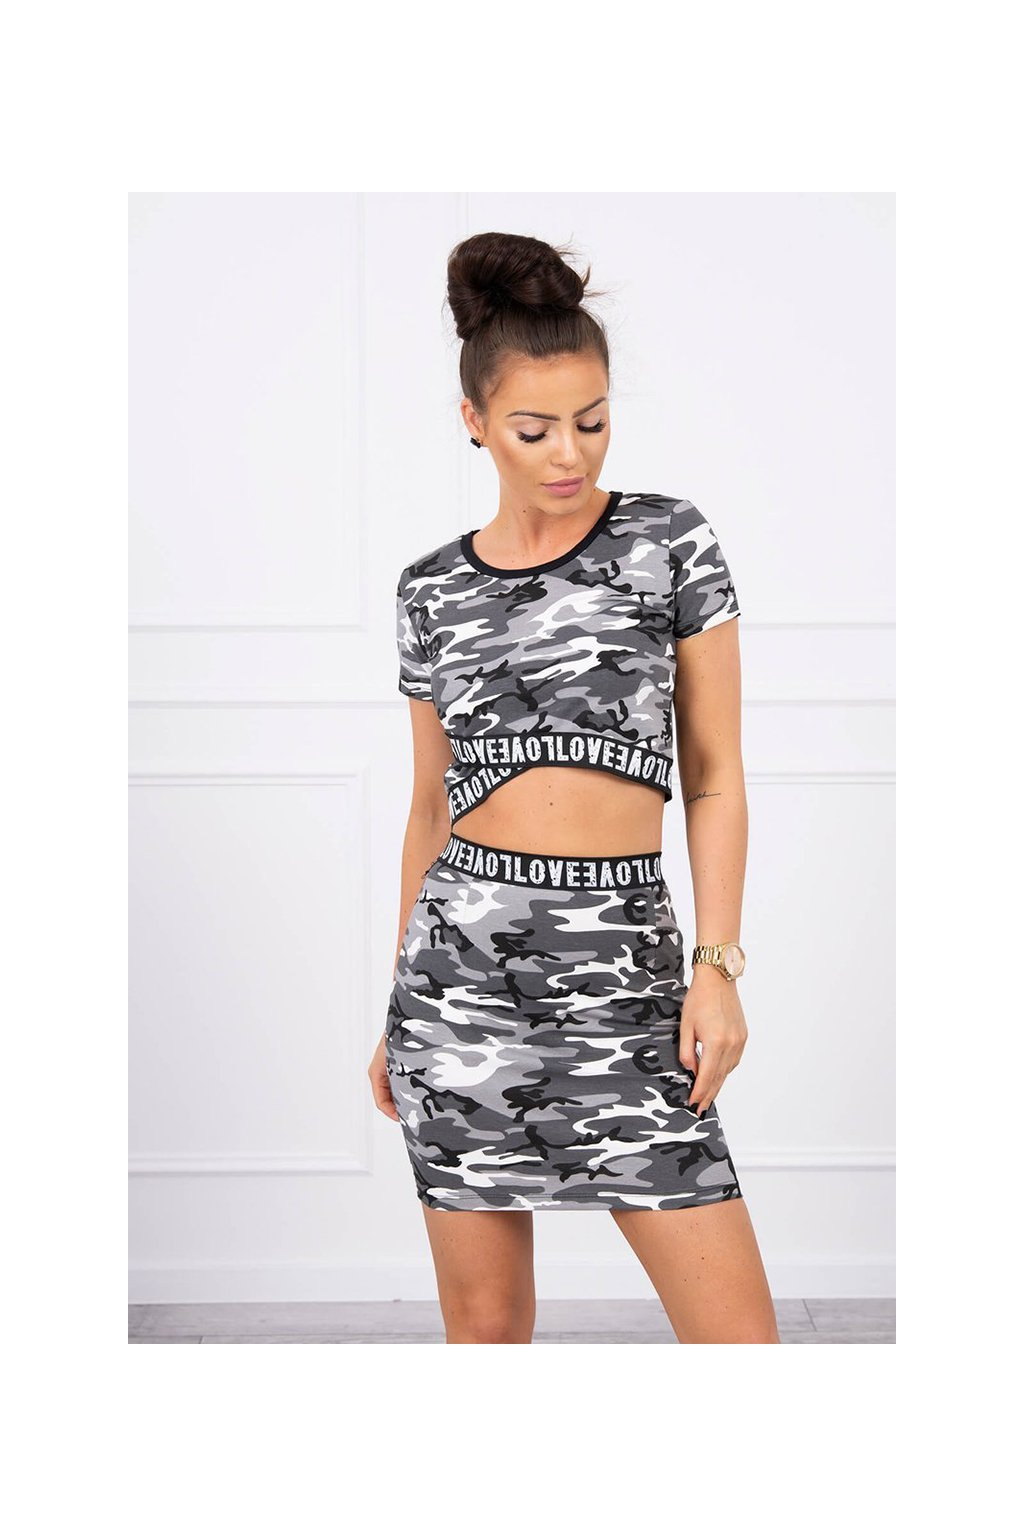 eng pl Set of blouses with a skirt camo gray black 17598 3